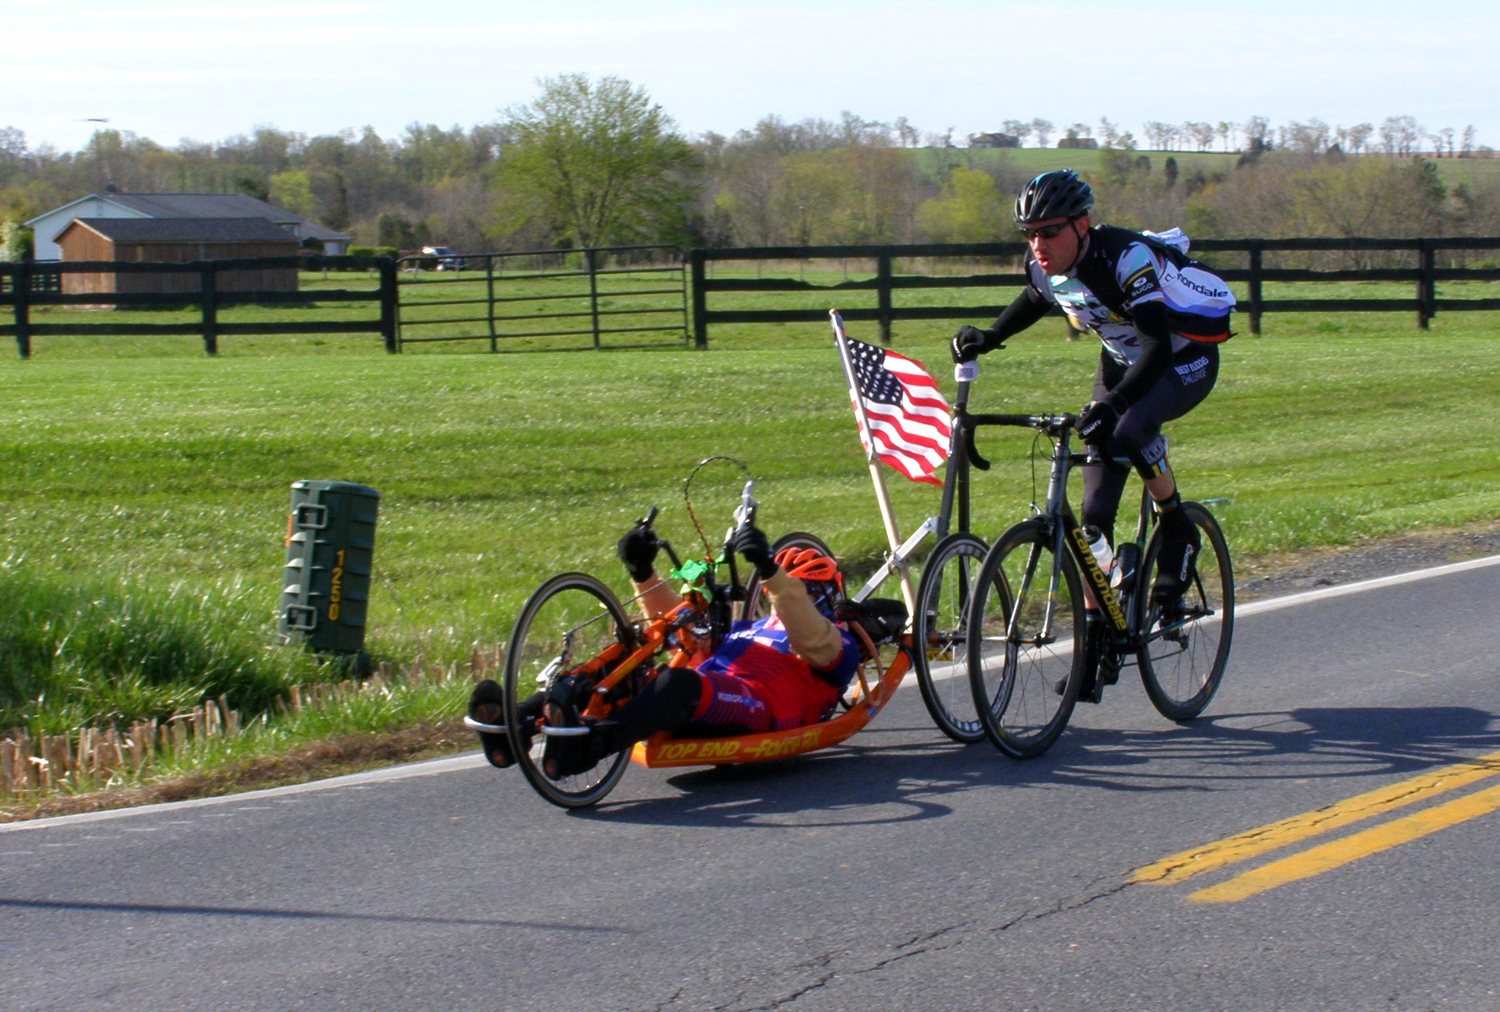 An able-bodied rider provides assistance in 2015.